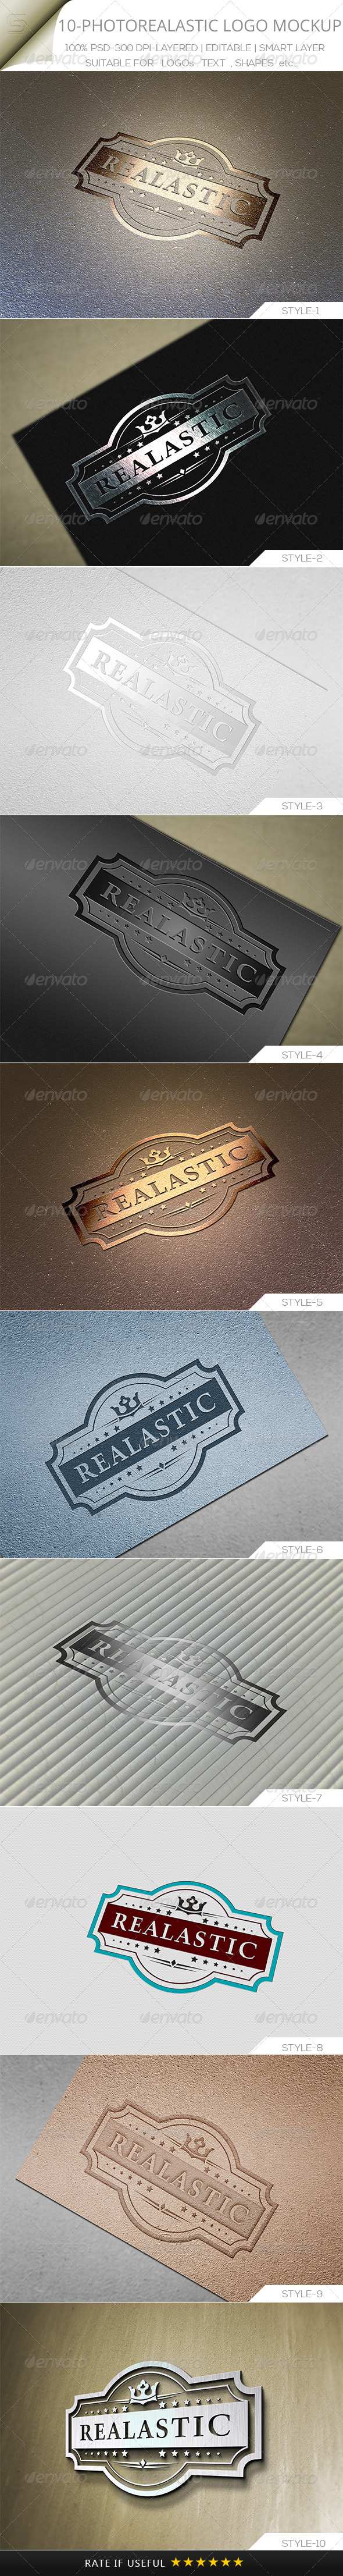 GraphicRiver 10 Photorealastic Logo Mock-up V-01 5581707